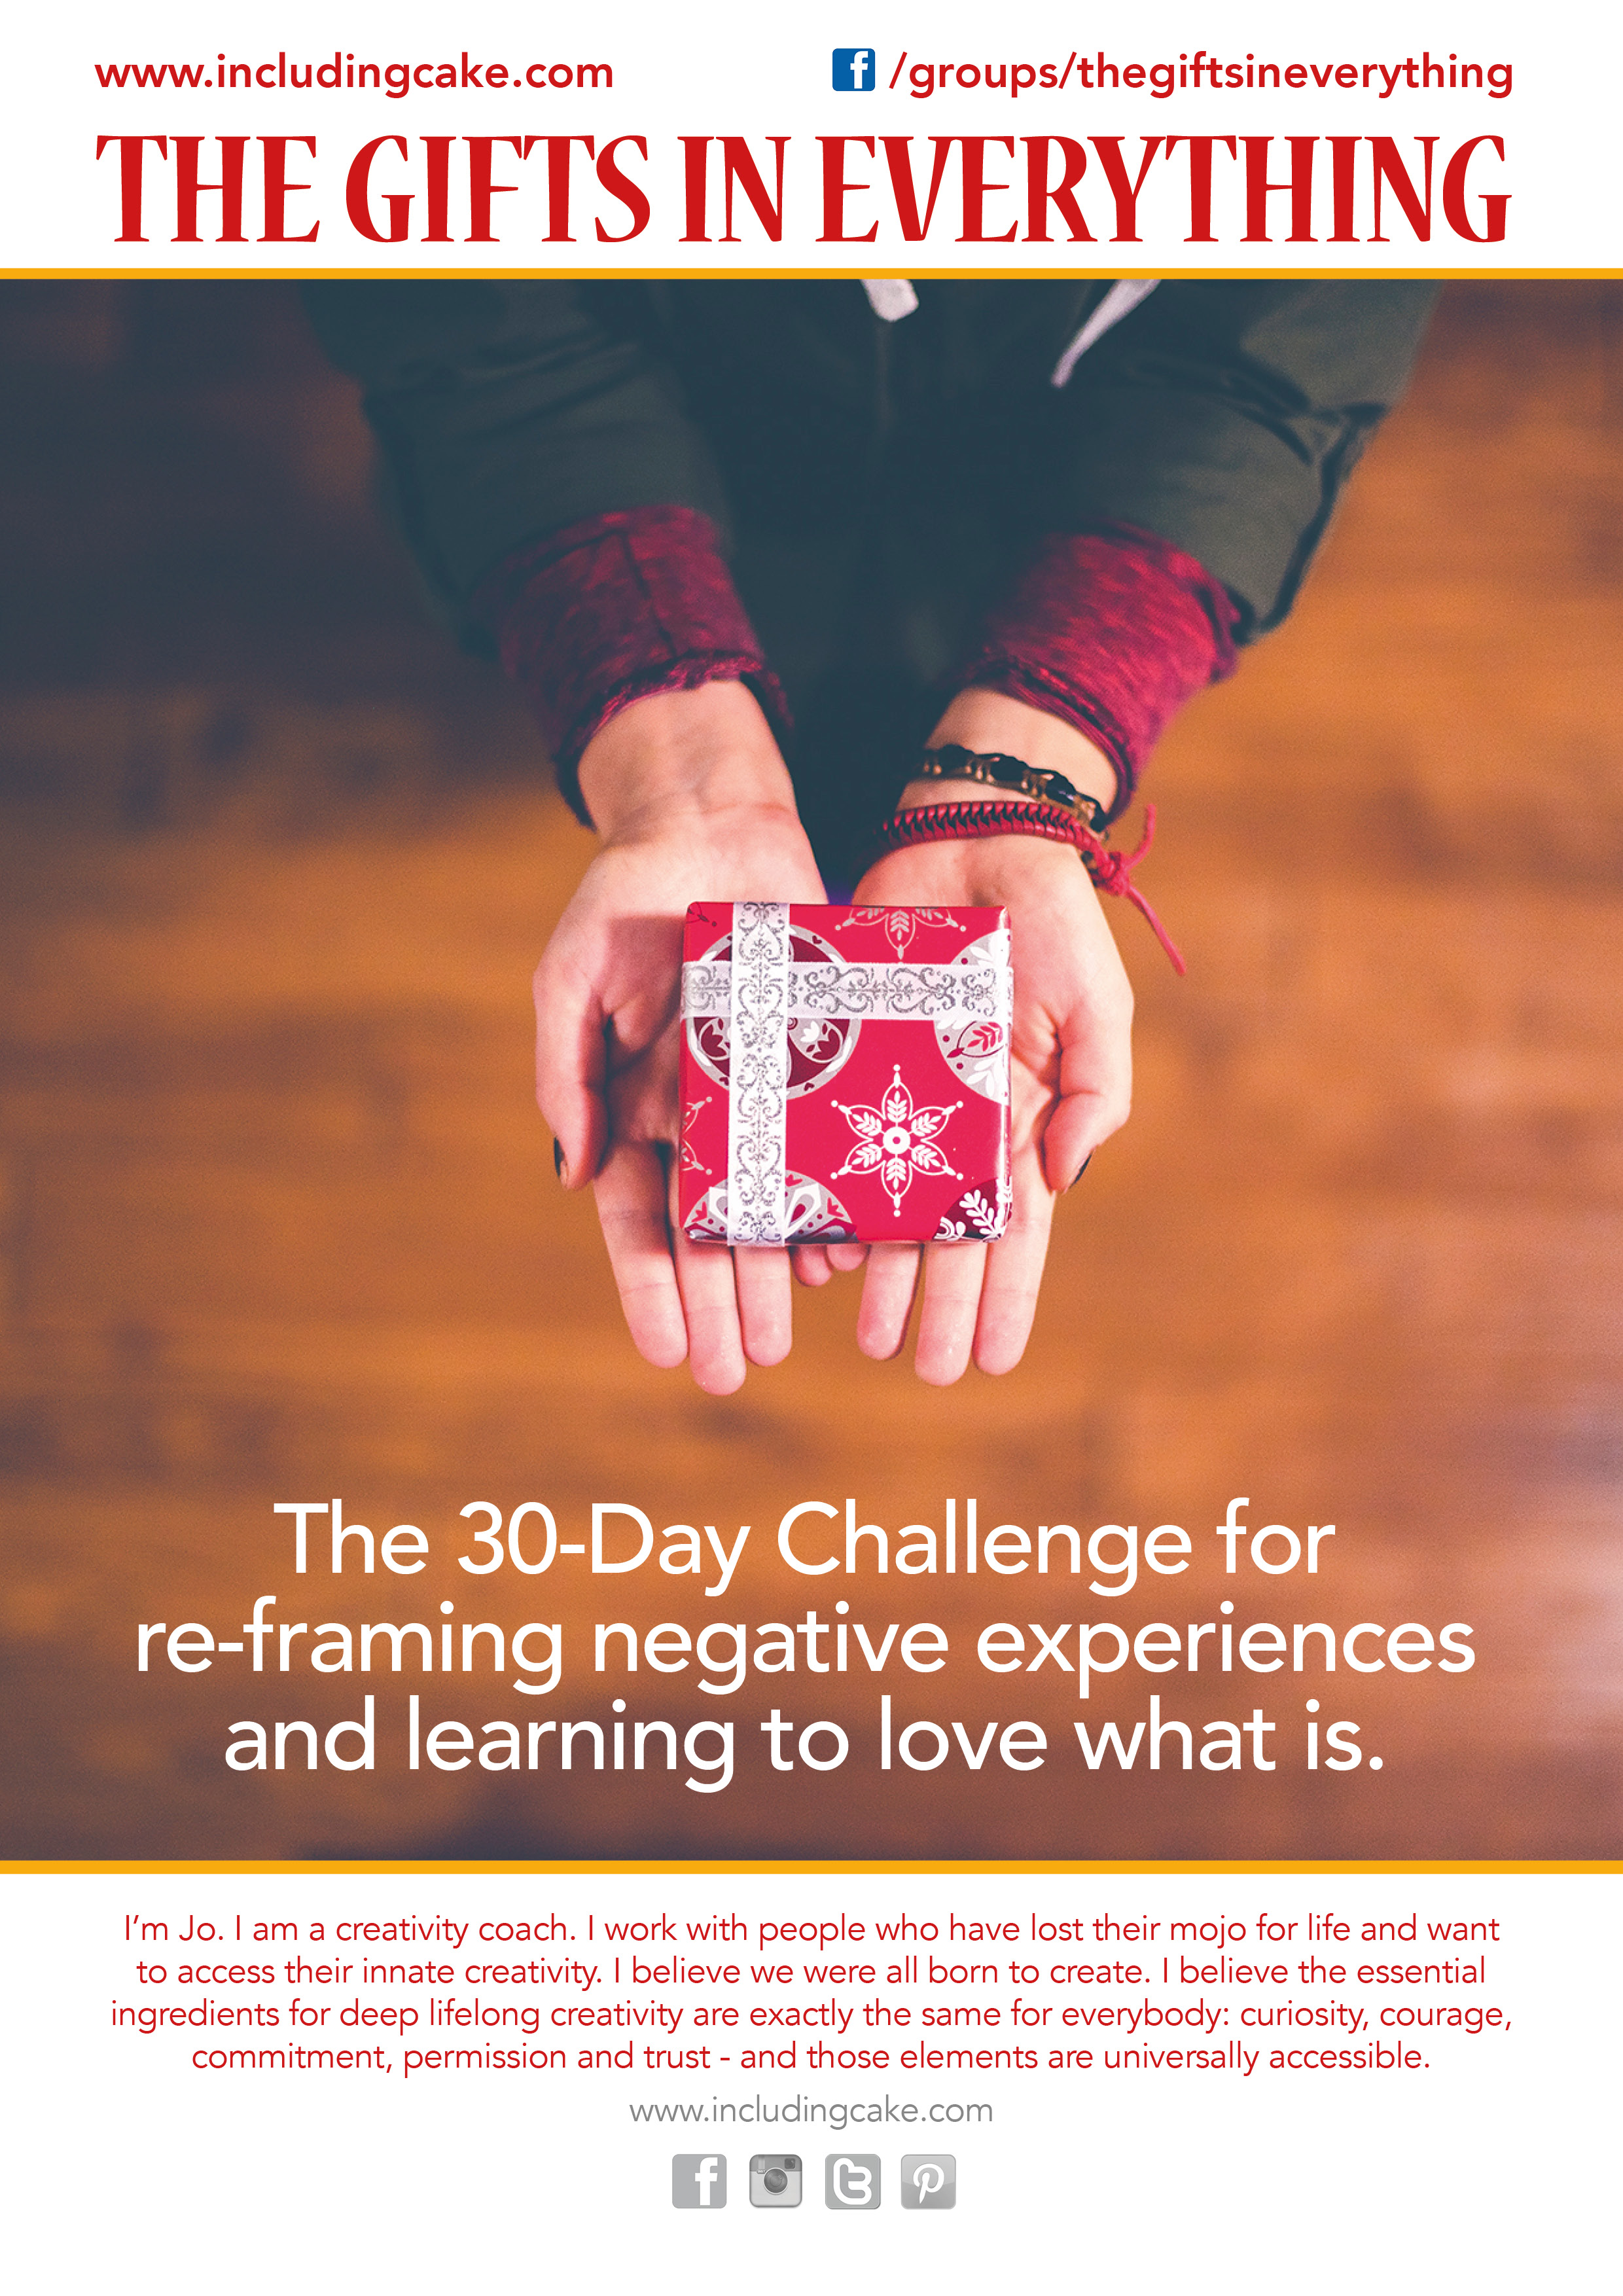 The Gifts In Everything - The 30 Day Challenge for re-framing negative experiences and learning to love what is.